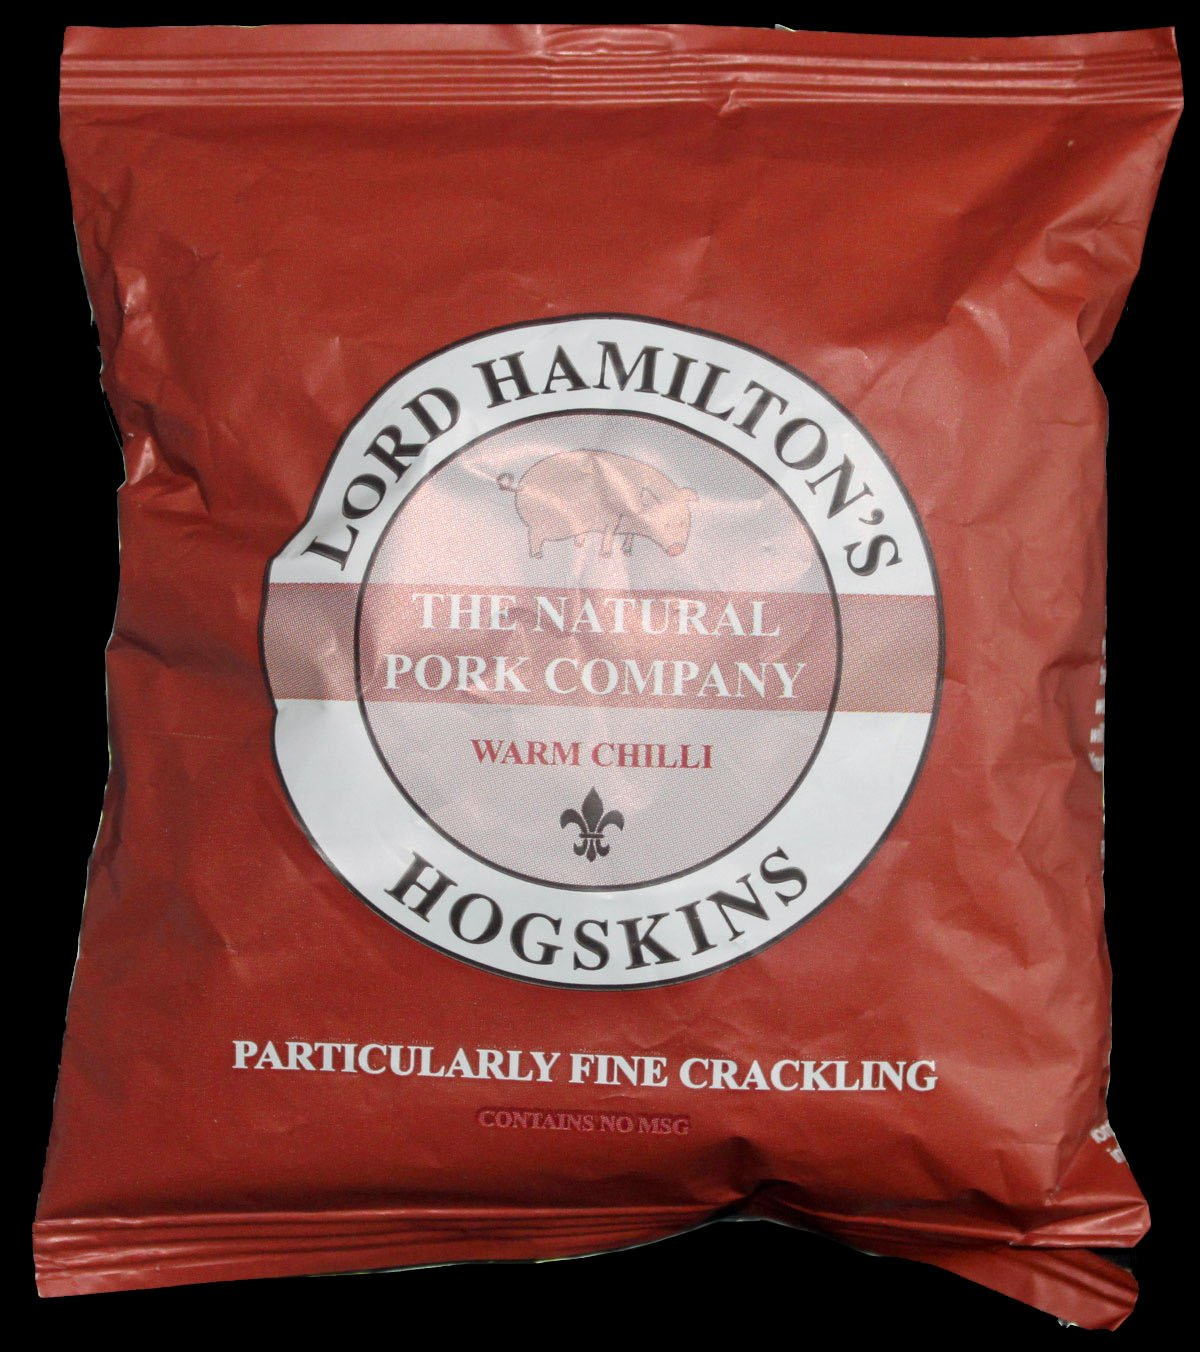 Lord Hamiltons Hogskins Warm Chilli Particularly Fine Crackling Review - Lord Hamiltons Hogskins, Warm Chilli, Particularly Fine Crackling Review